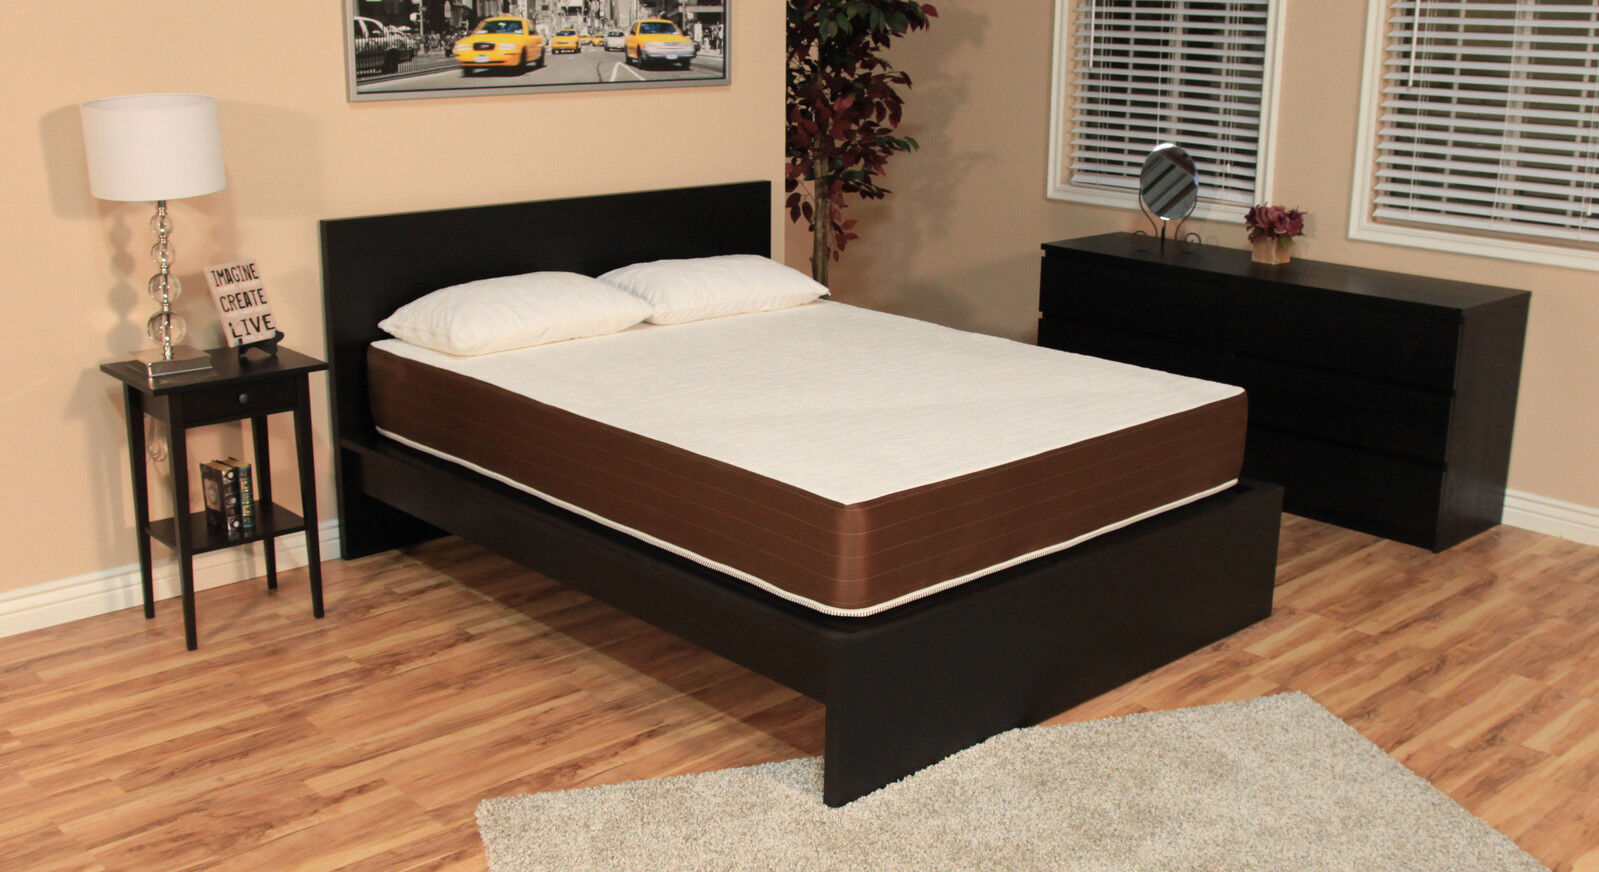 How to Buy a Memory Foam Mattress on a Budget